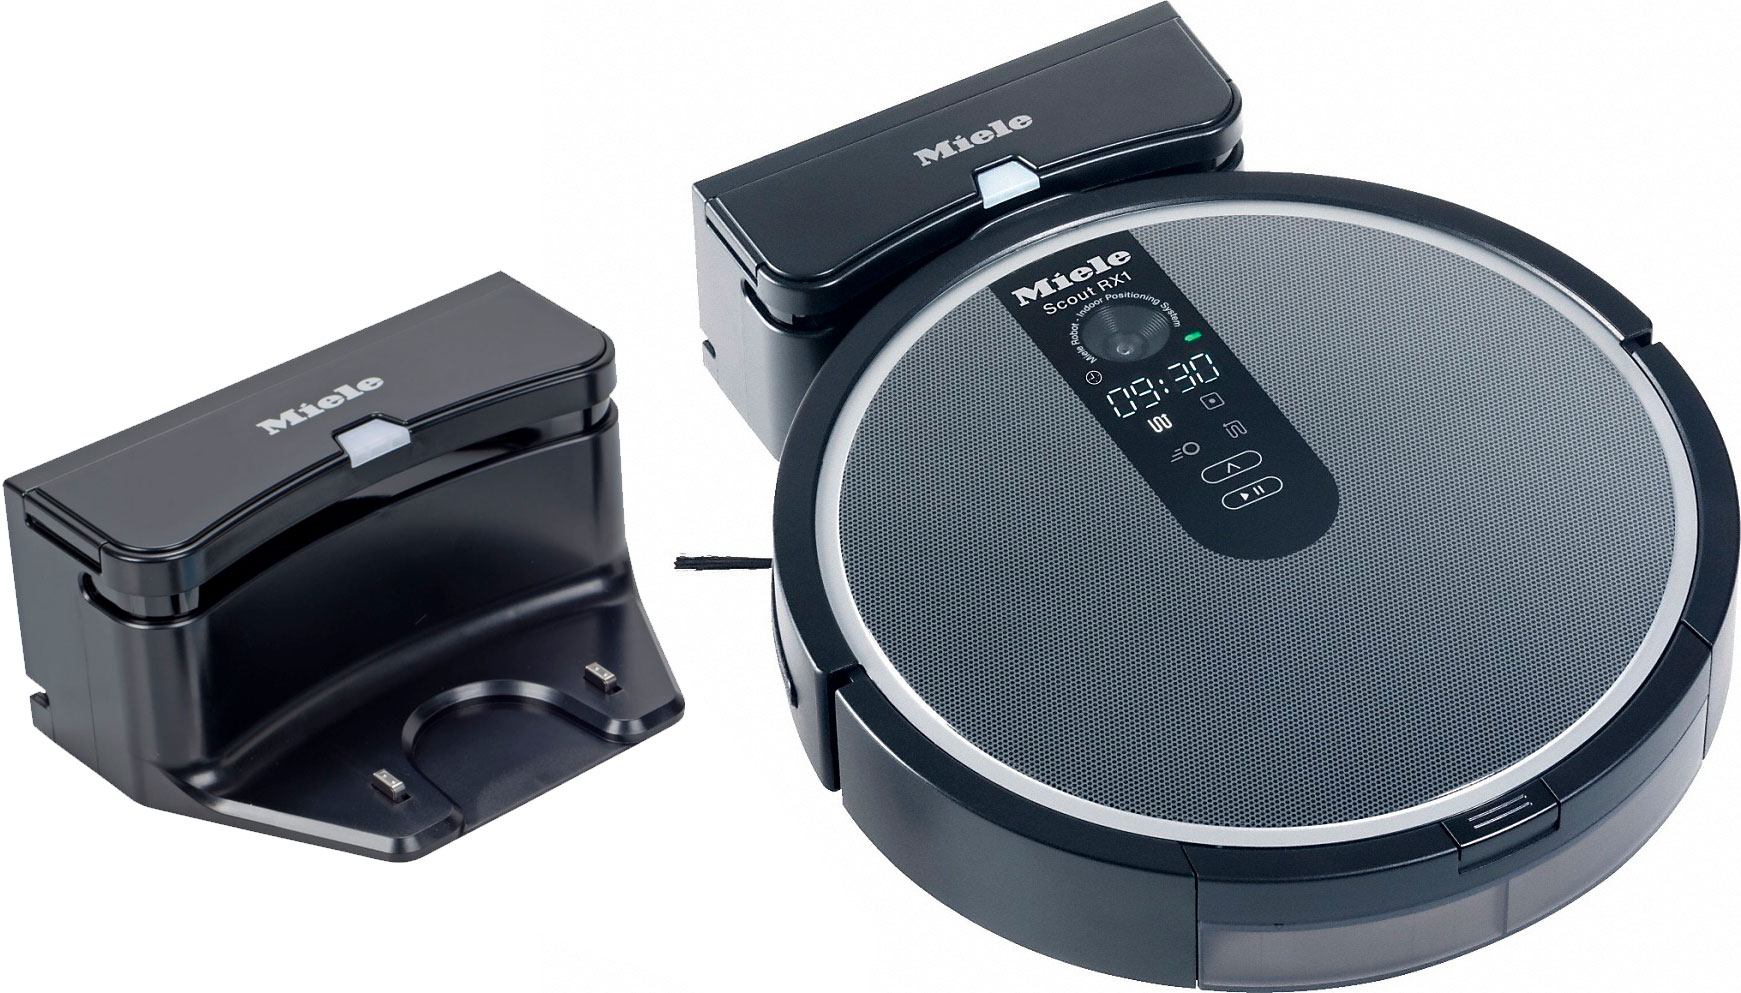 Robotic vacuum cleaner and charging dock